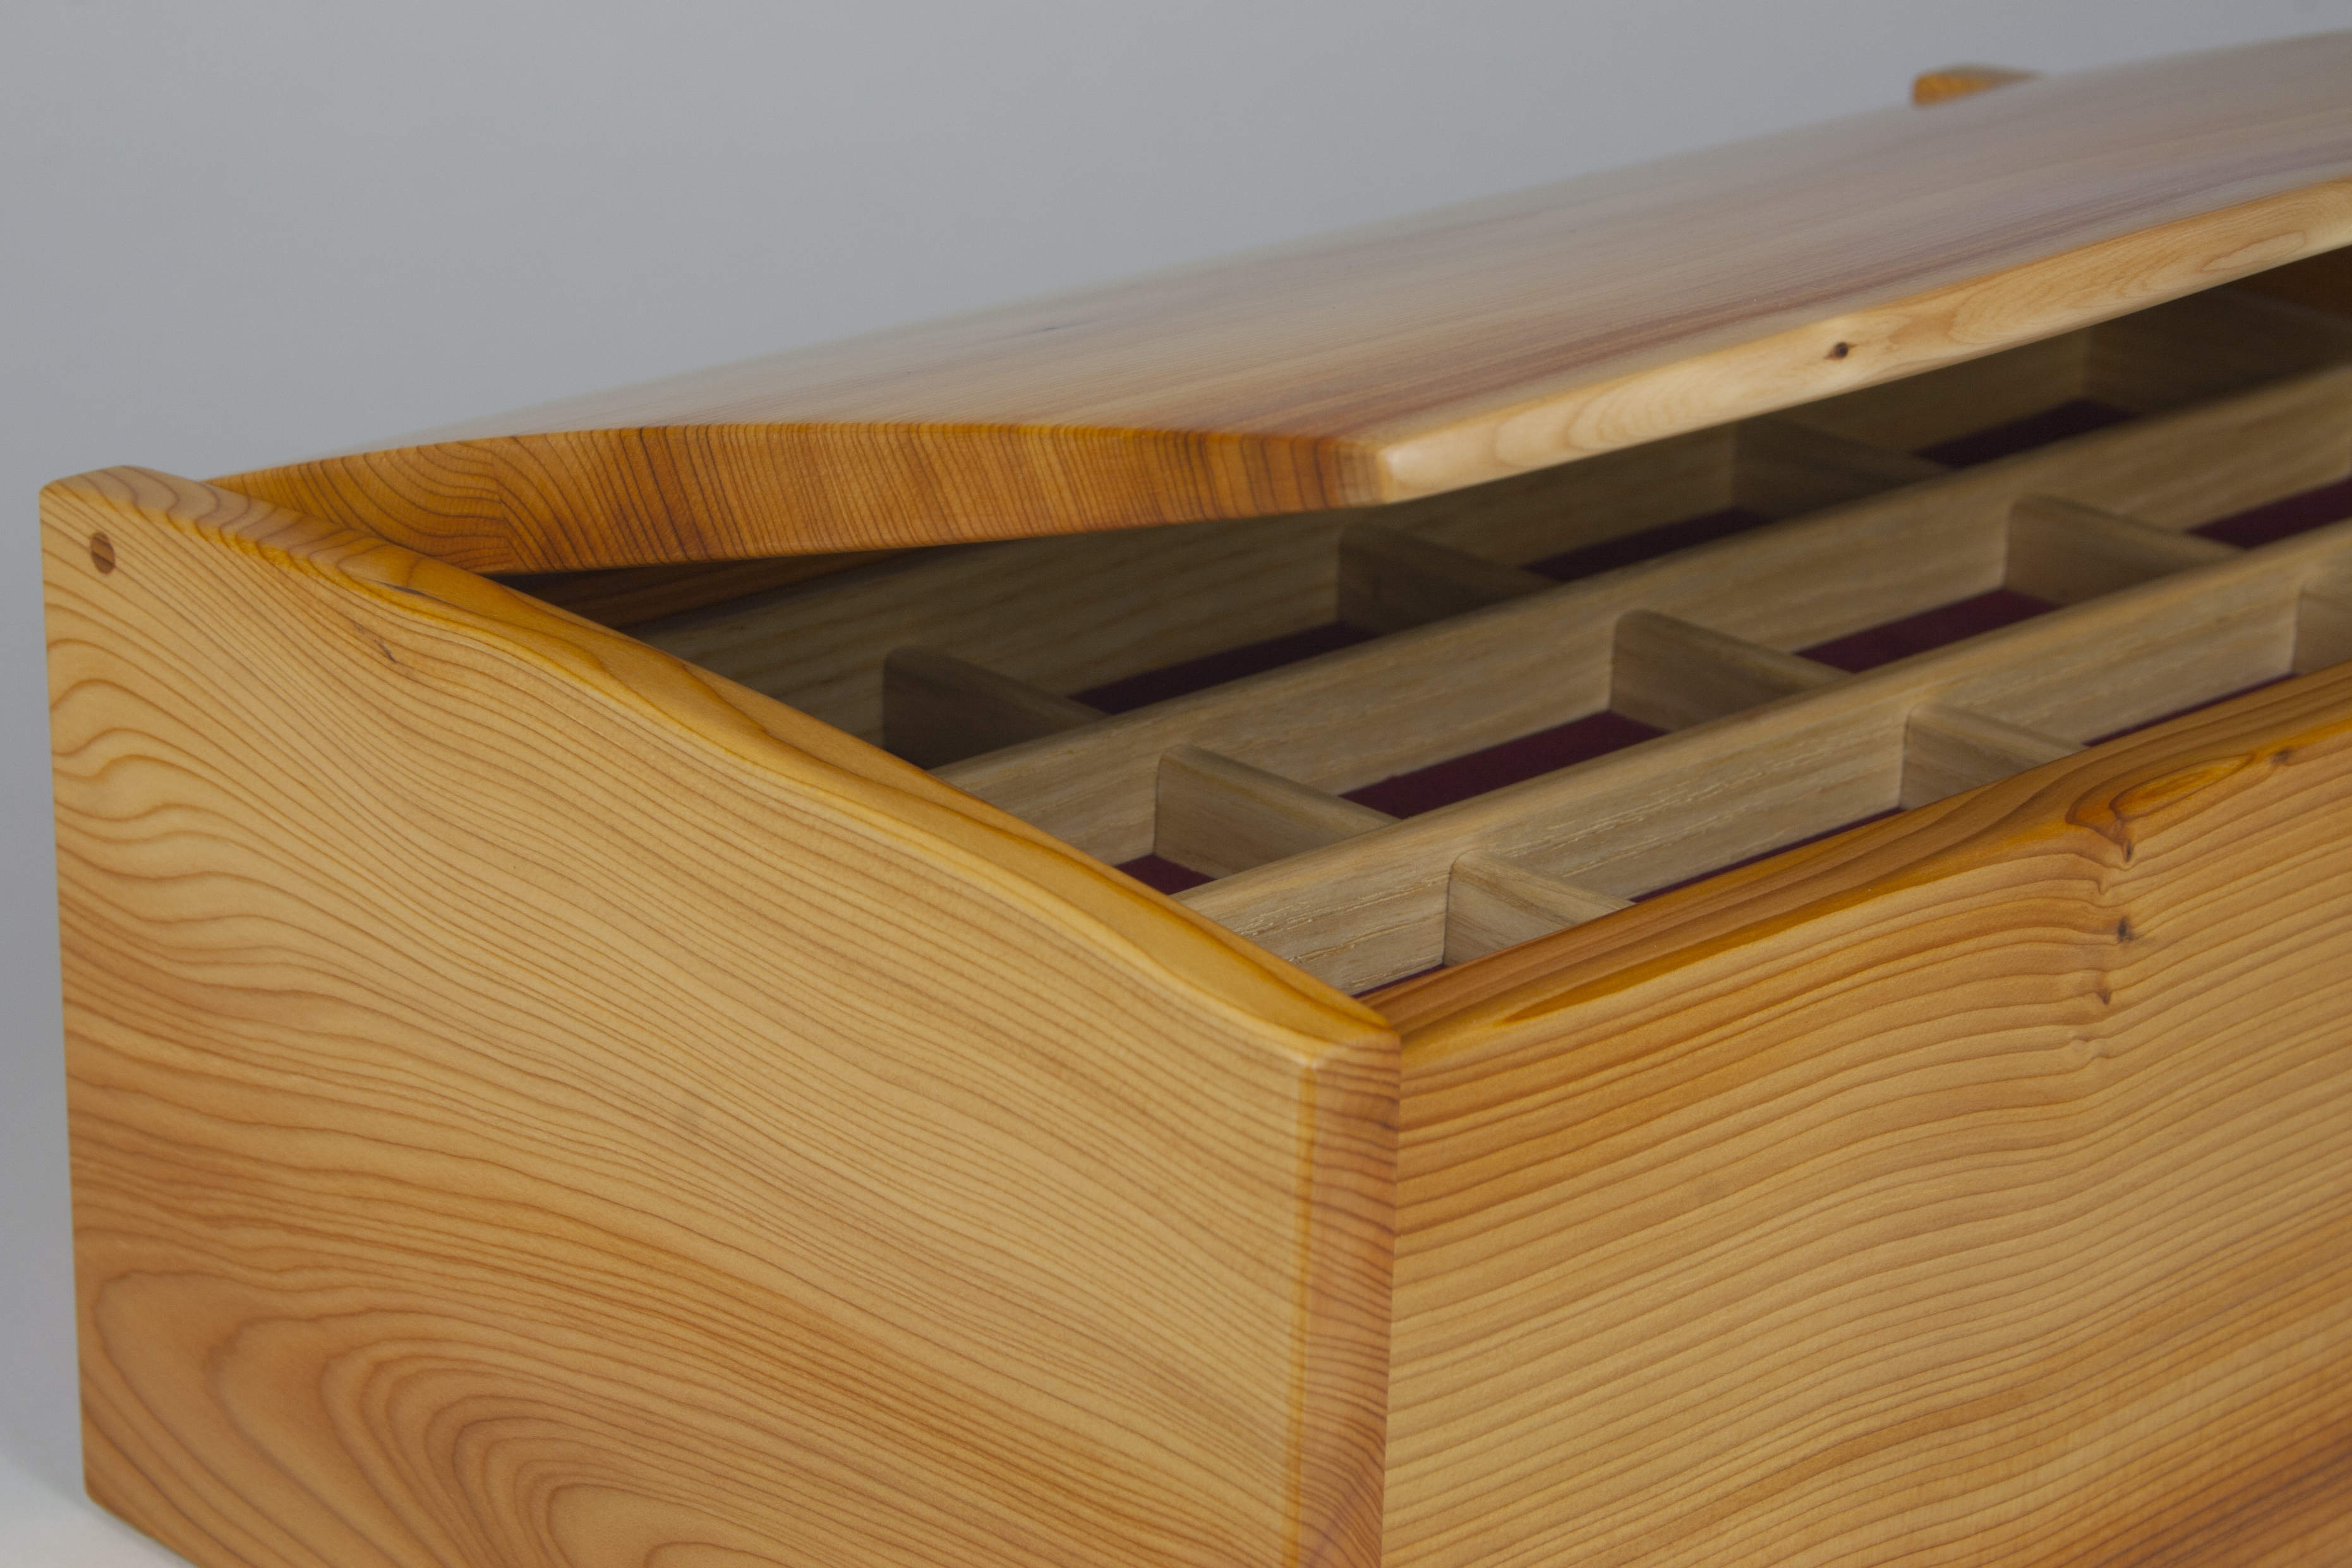 Jewellery box with lid just open